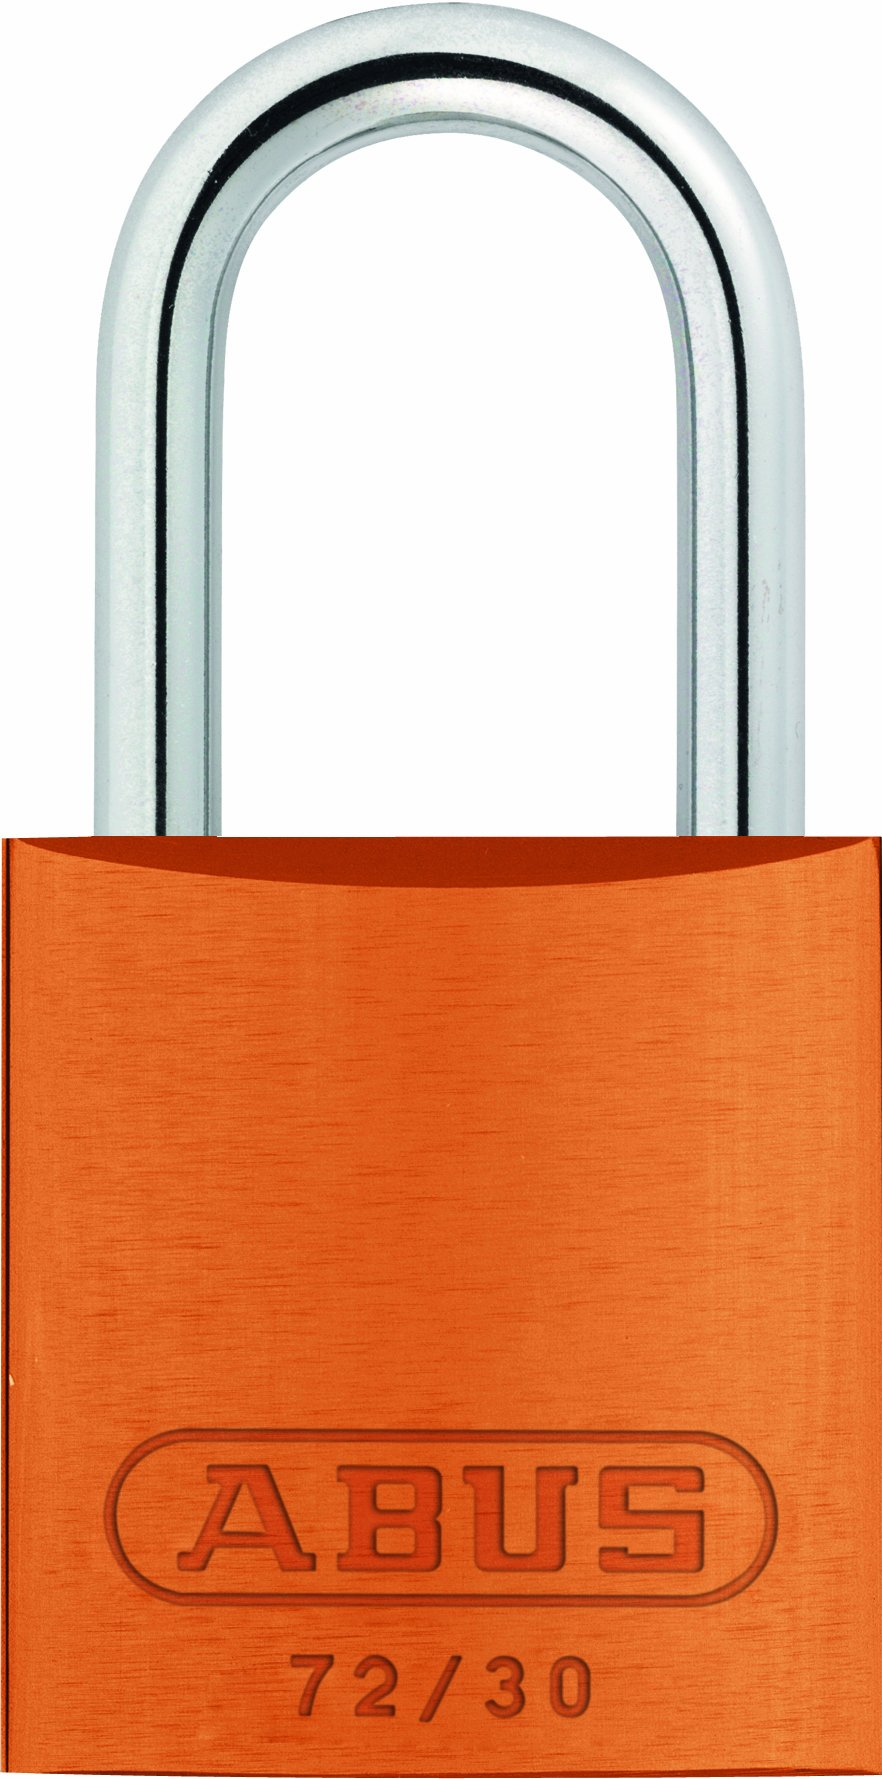 ABUS 72/30 KD Safety Lockout Aluminum Keyed Different Padlock, Orange